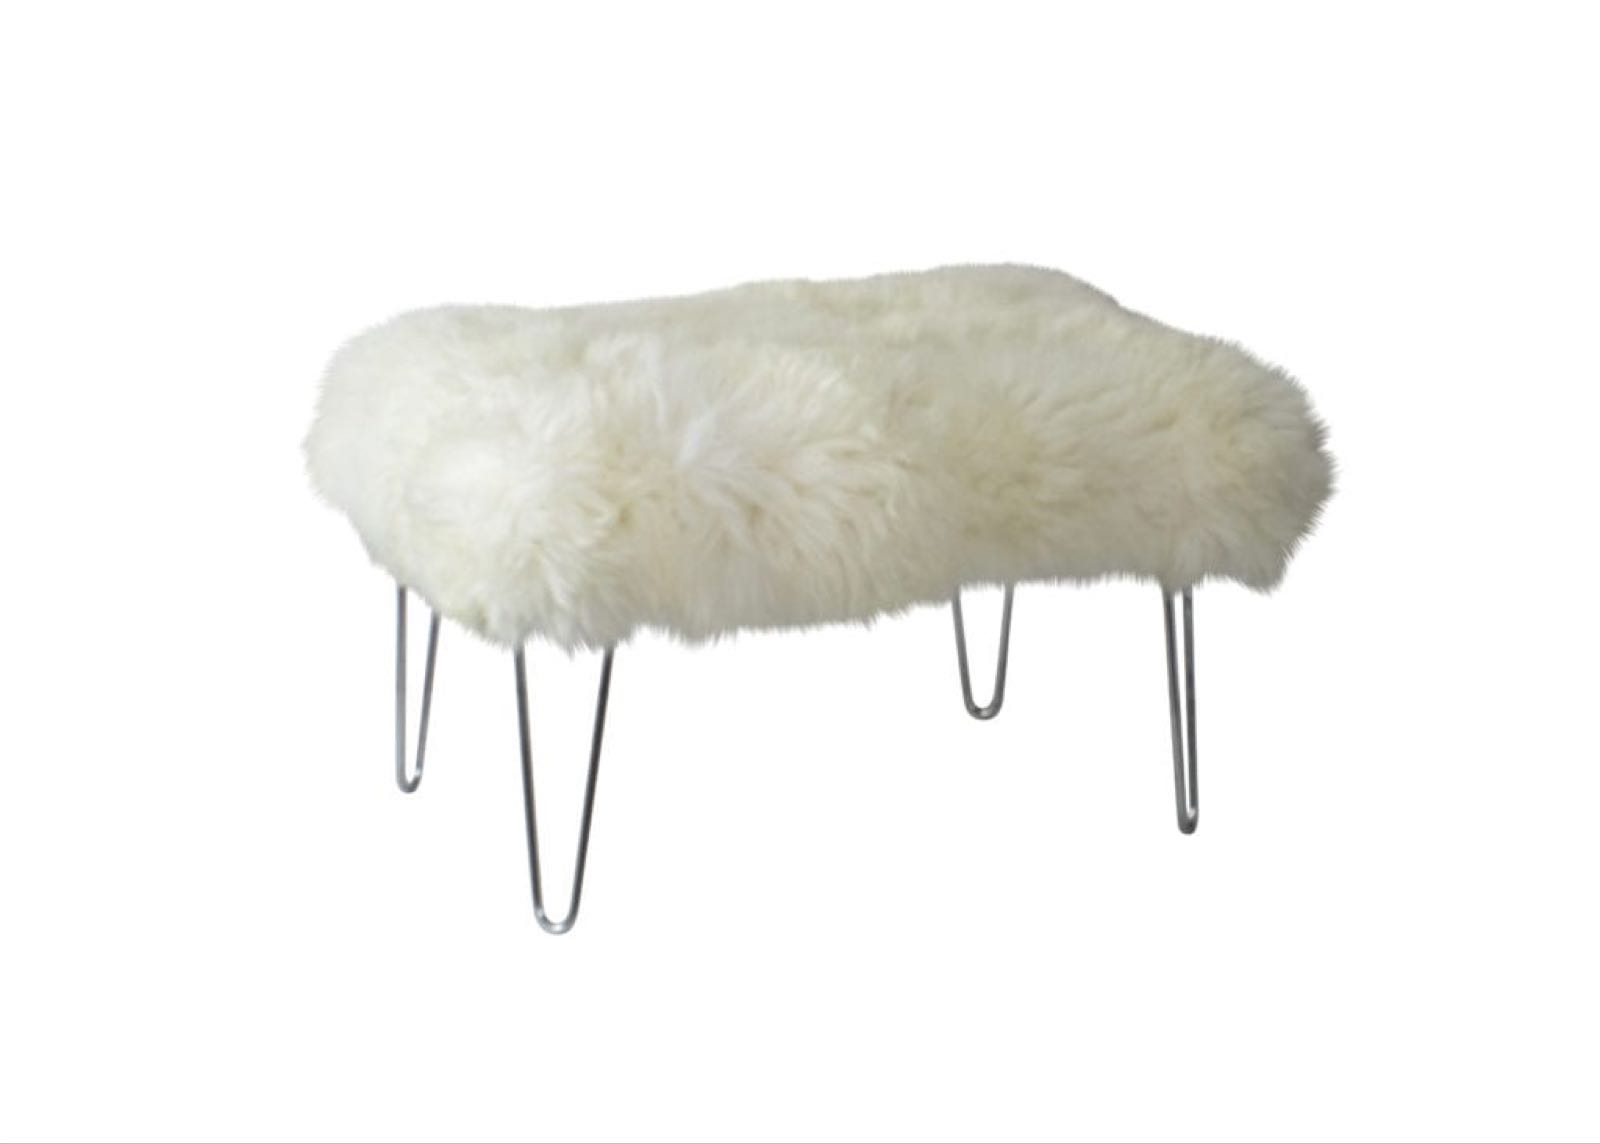 NEW!!! RRP £530 Baa stool Betty with Ivory removable Sheepskin and Chrome hairpin legs 85cm x 65cm x 50cm high, Betty looks fab with a tray on top or used as a table or is perfect in a bay window to use as a window seat.